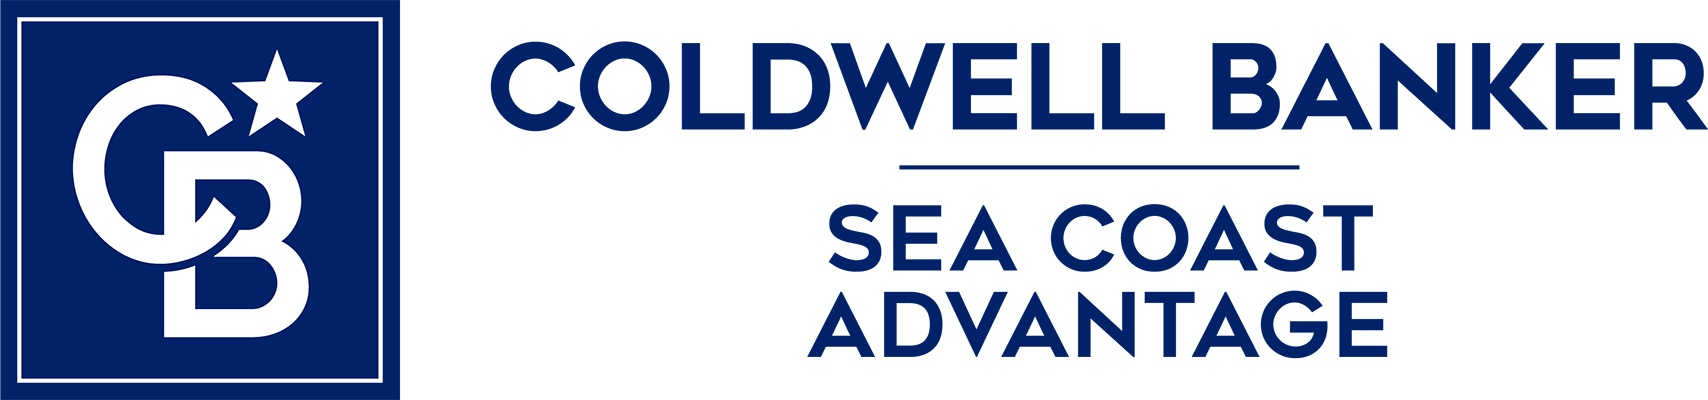 Judy McGuire - Coldwell Banker Sea Coast Advantage Realty